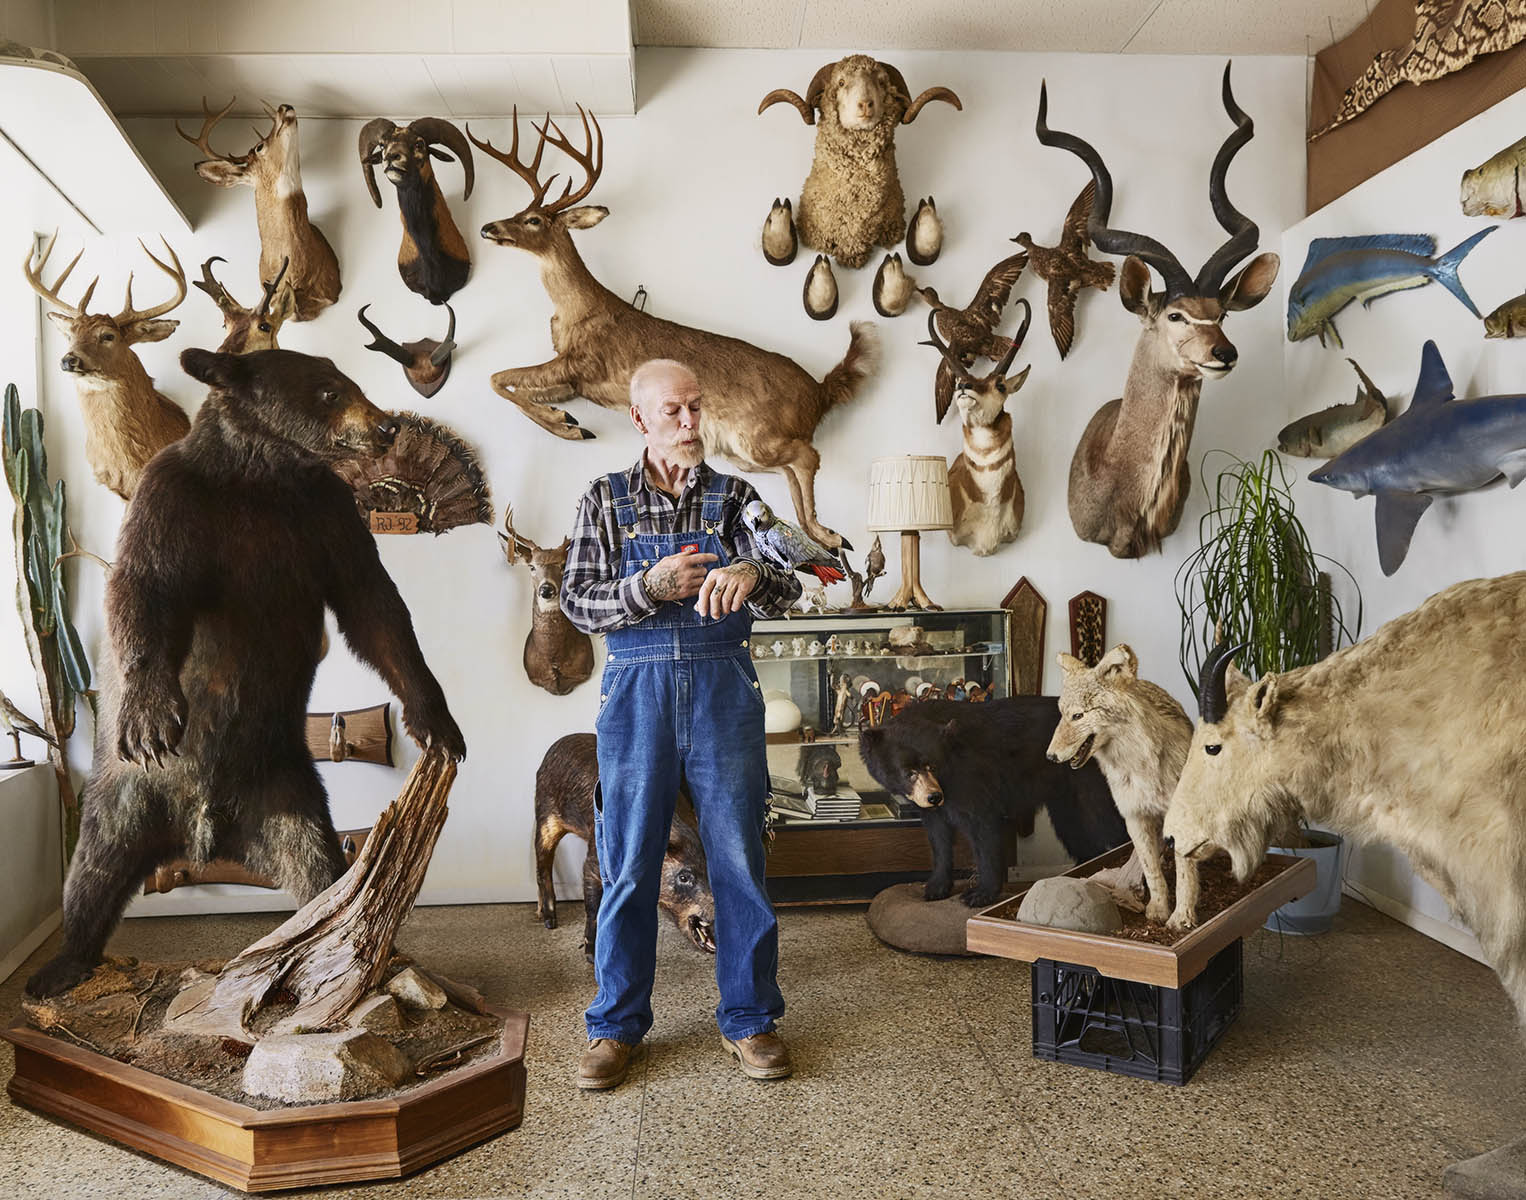 John The Taxidermy